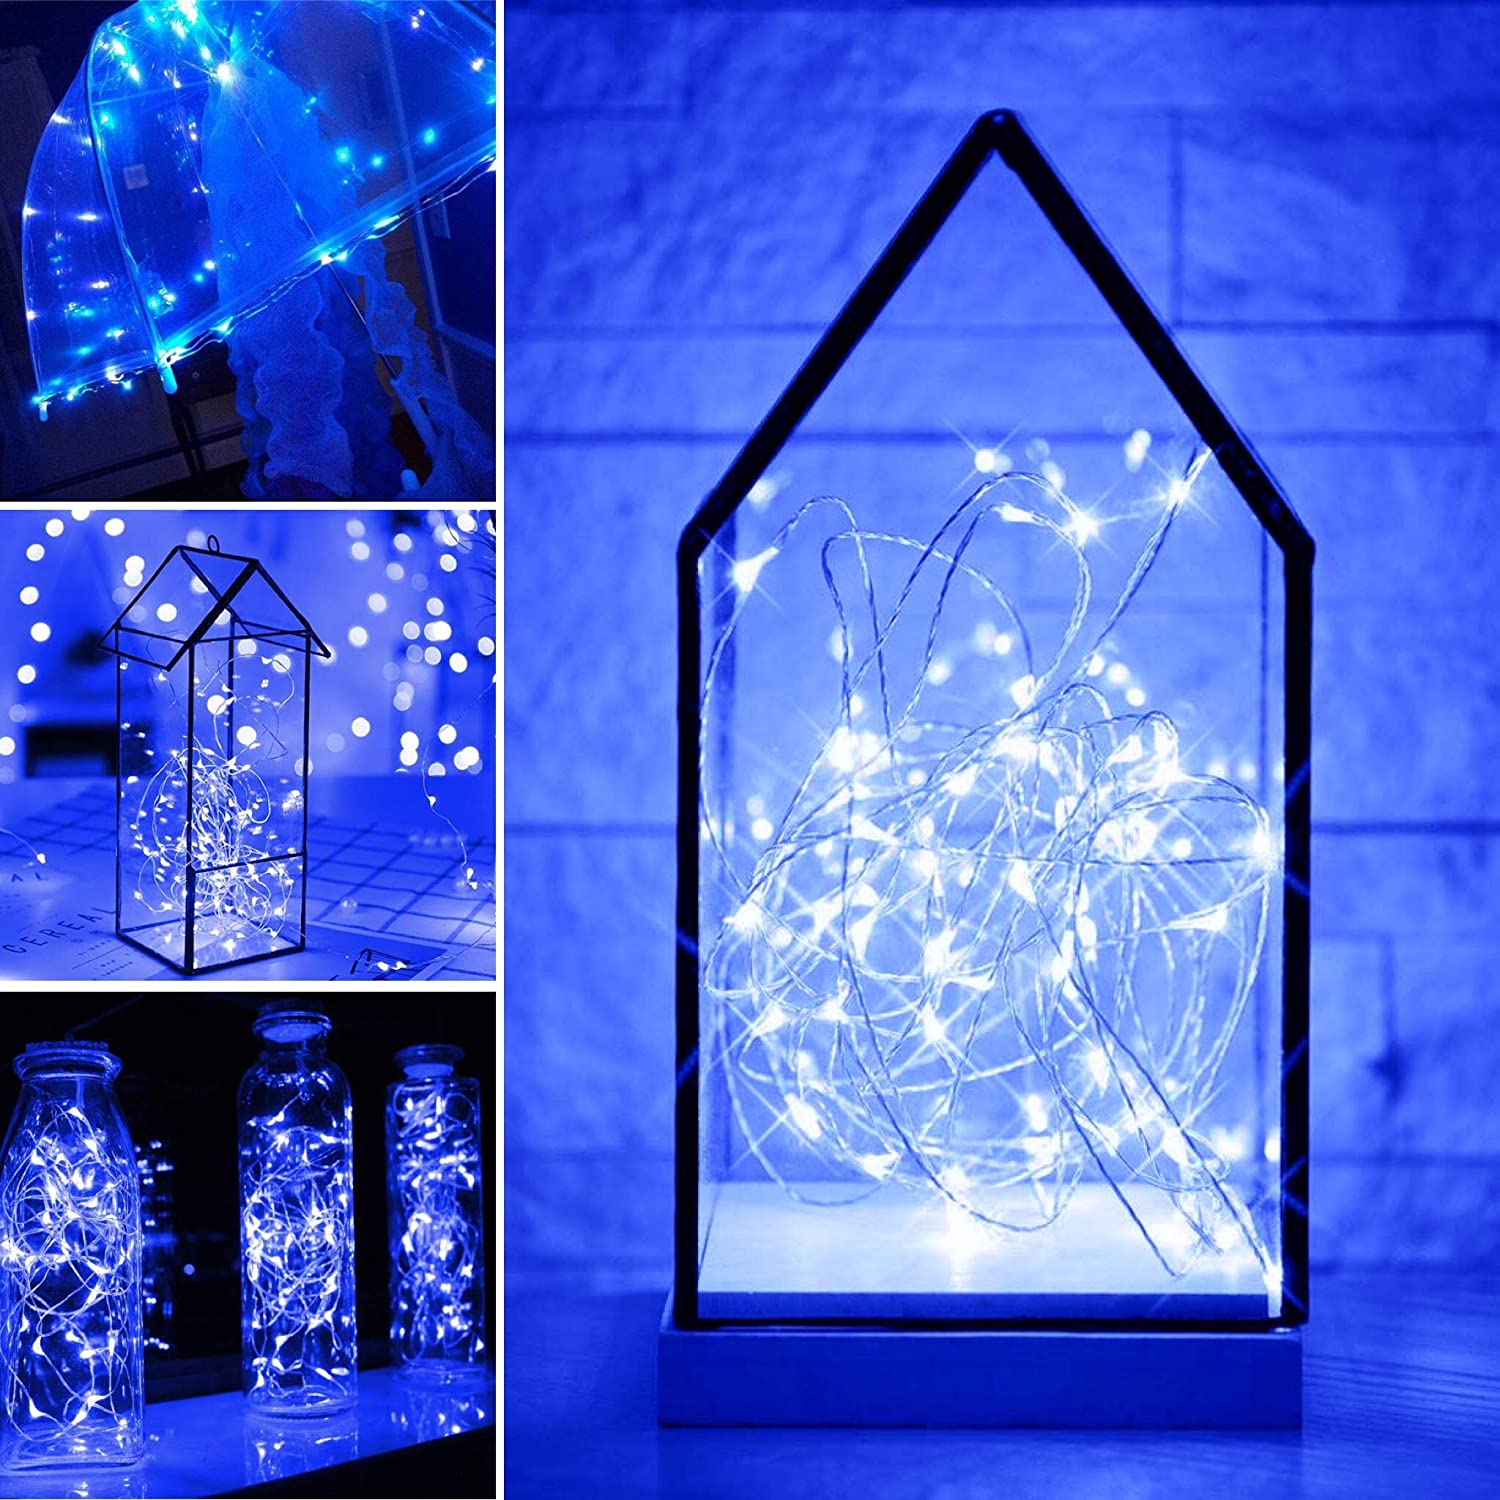 SmilingStore Starry String Fairy Lights 24 Pack Firefly Lights with 20 Micro LED on 7.2feet//2m Silver Copper Wire Battery Powered for DIY Wedding Party Centerpiece Decoration Warm White